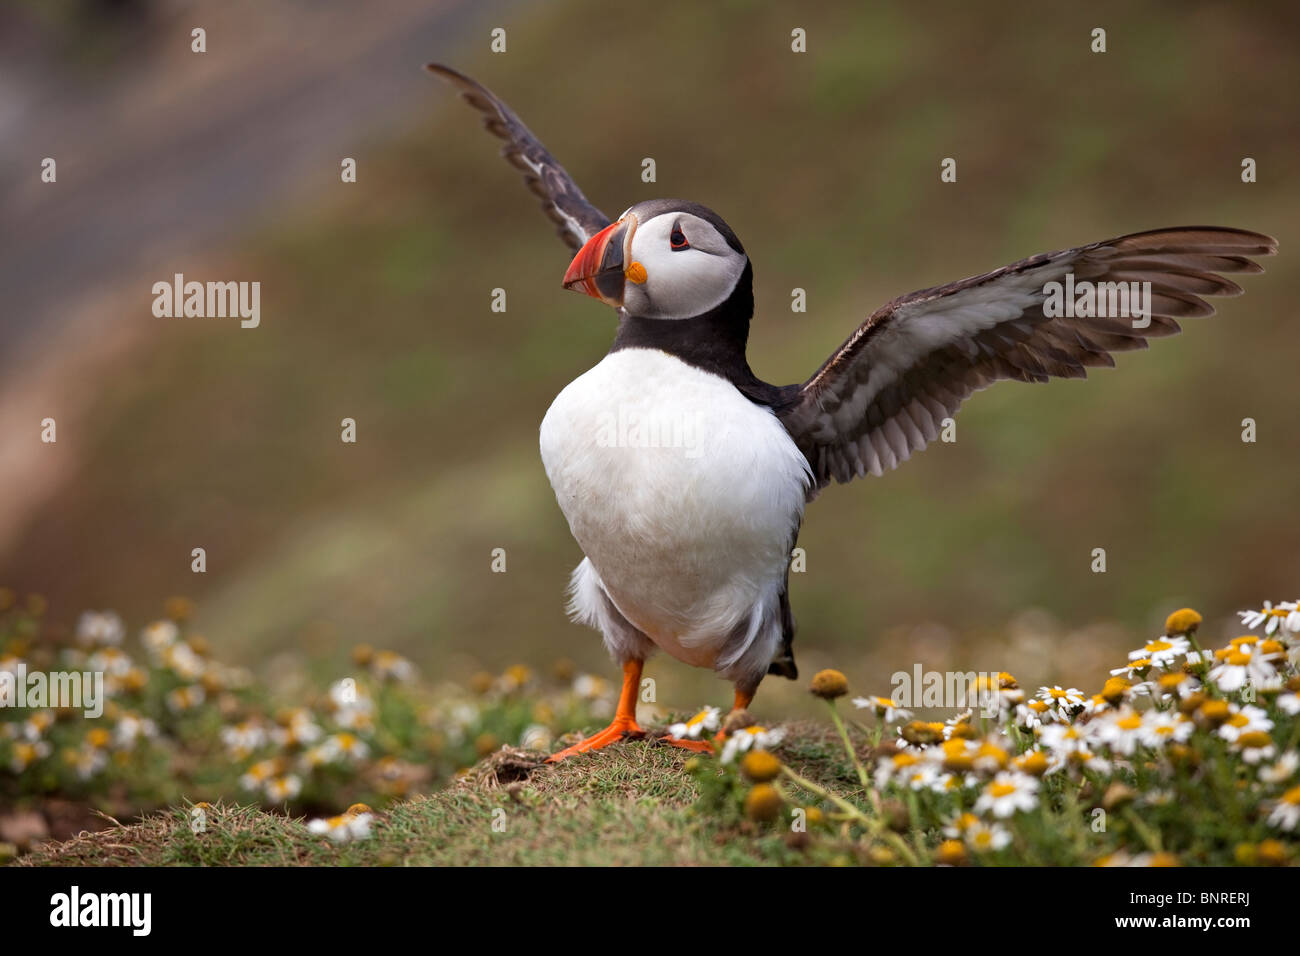 Puffin flapping its wings - Stock Image